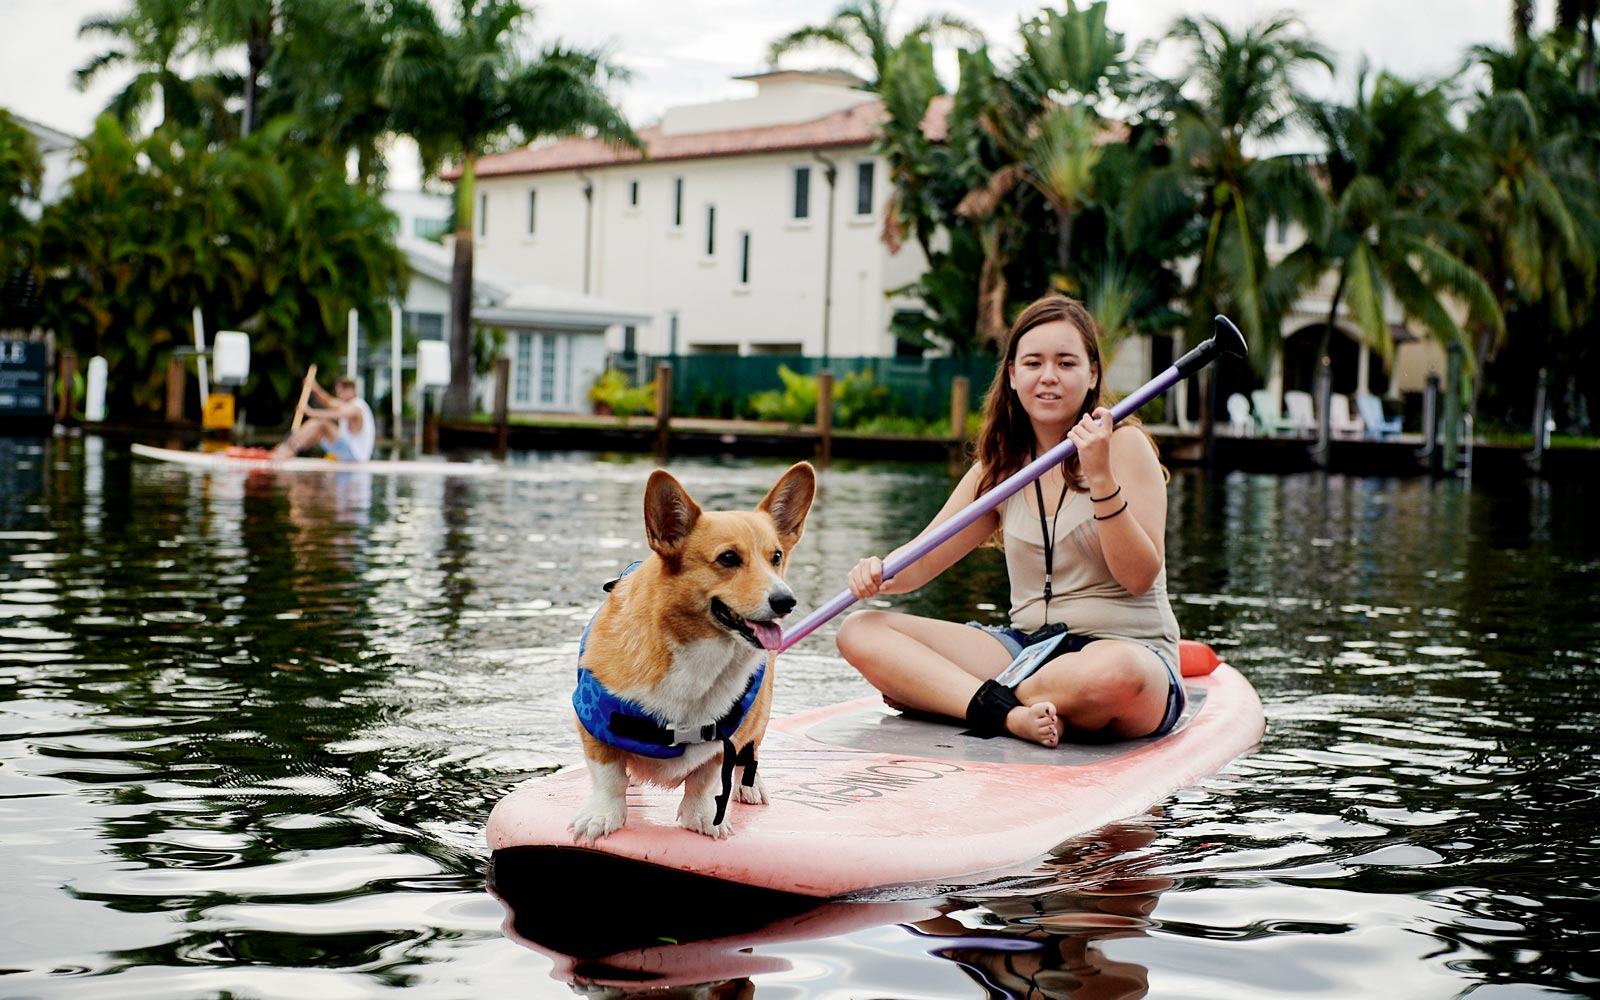 Corgi Paddleboating